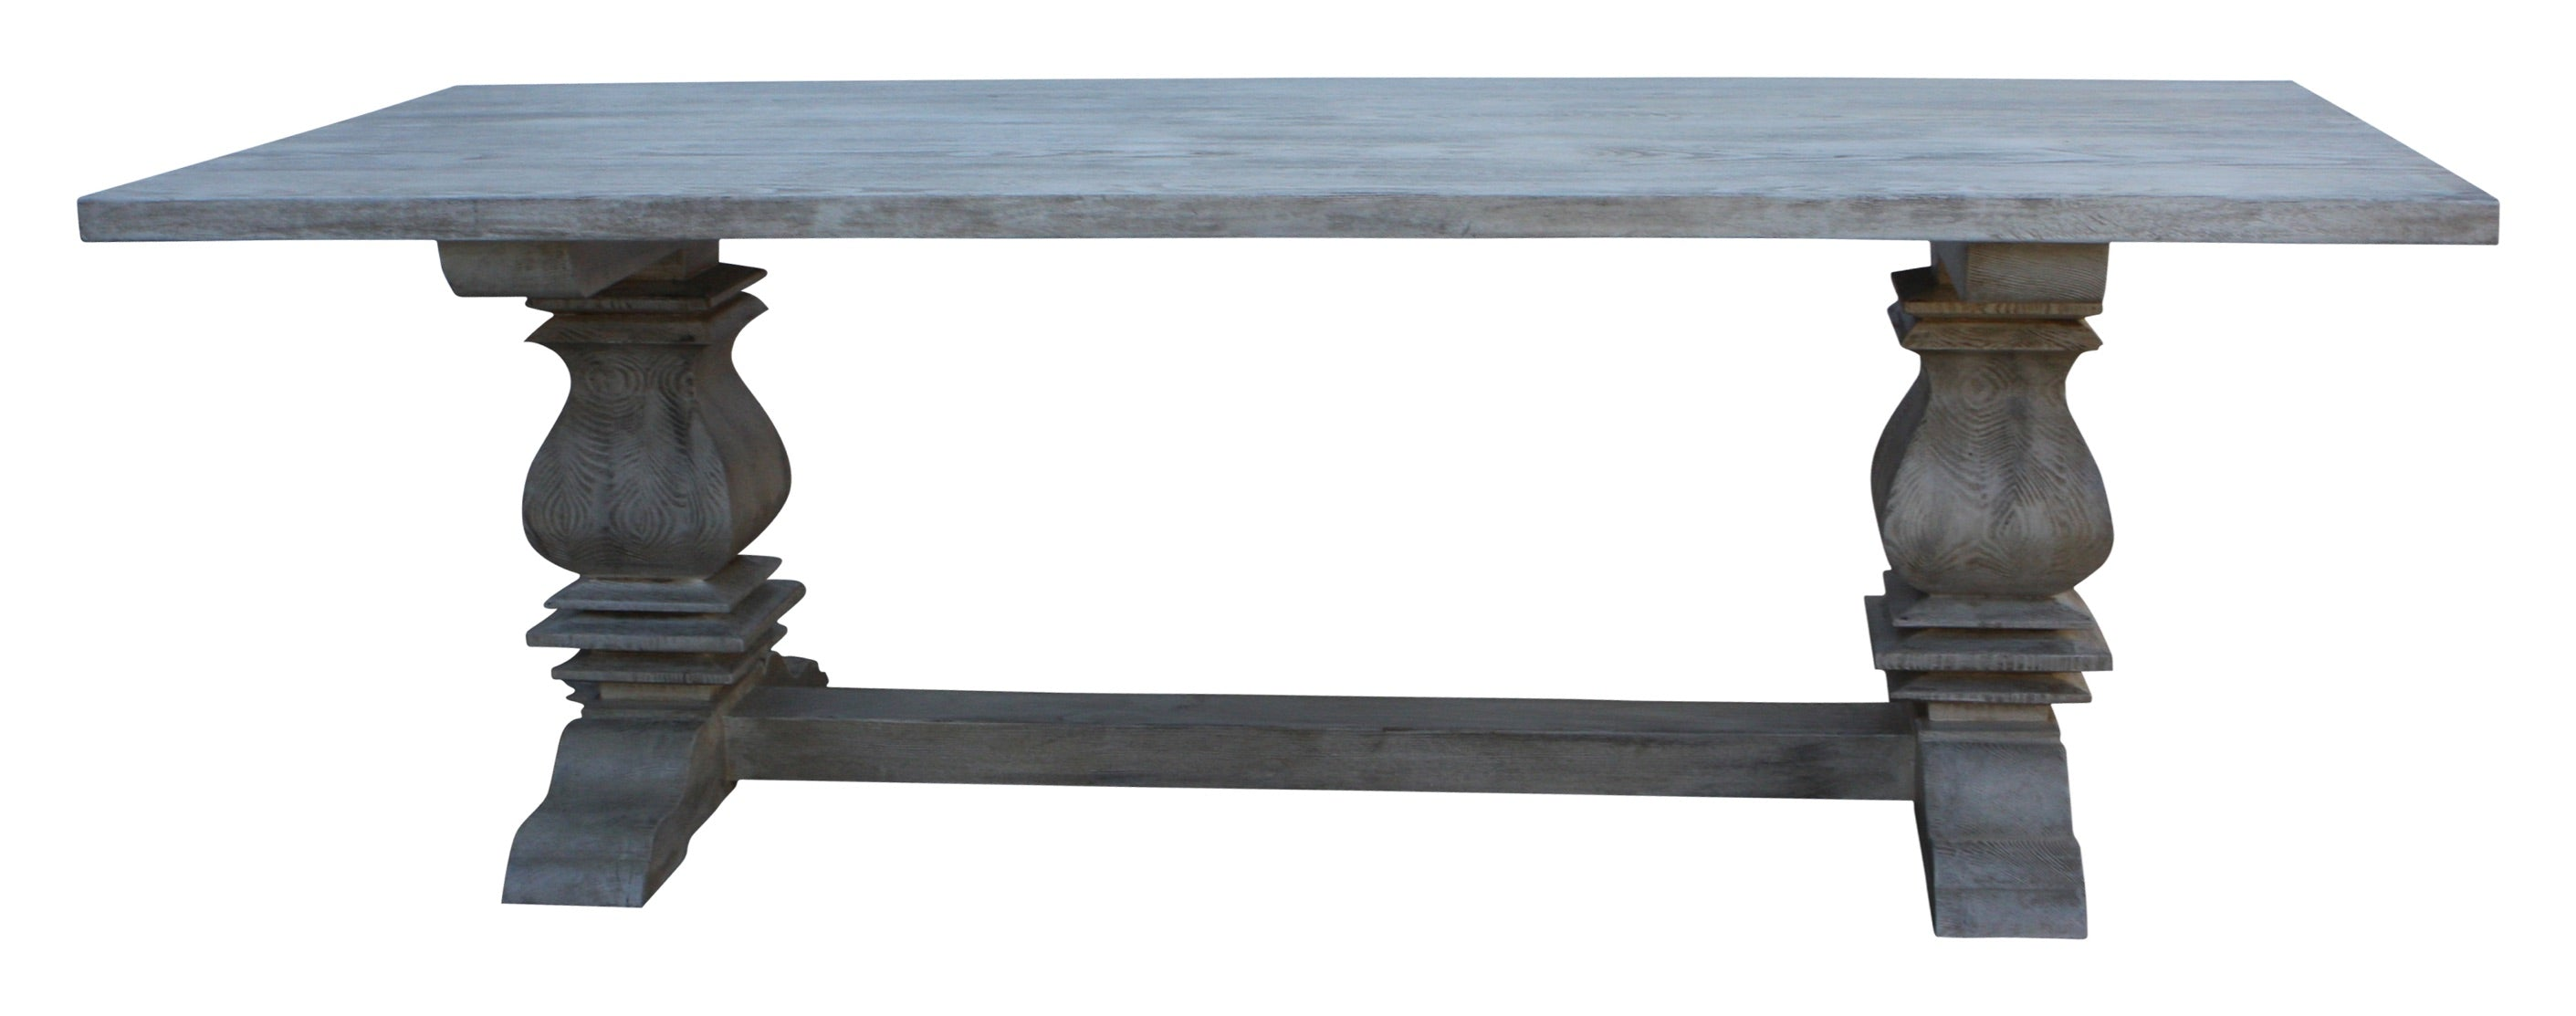 ... Segovia Reclaimed Wood Trestle Dining Table In Reclaimed Wood ...